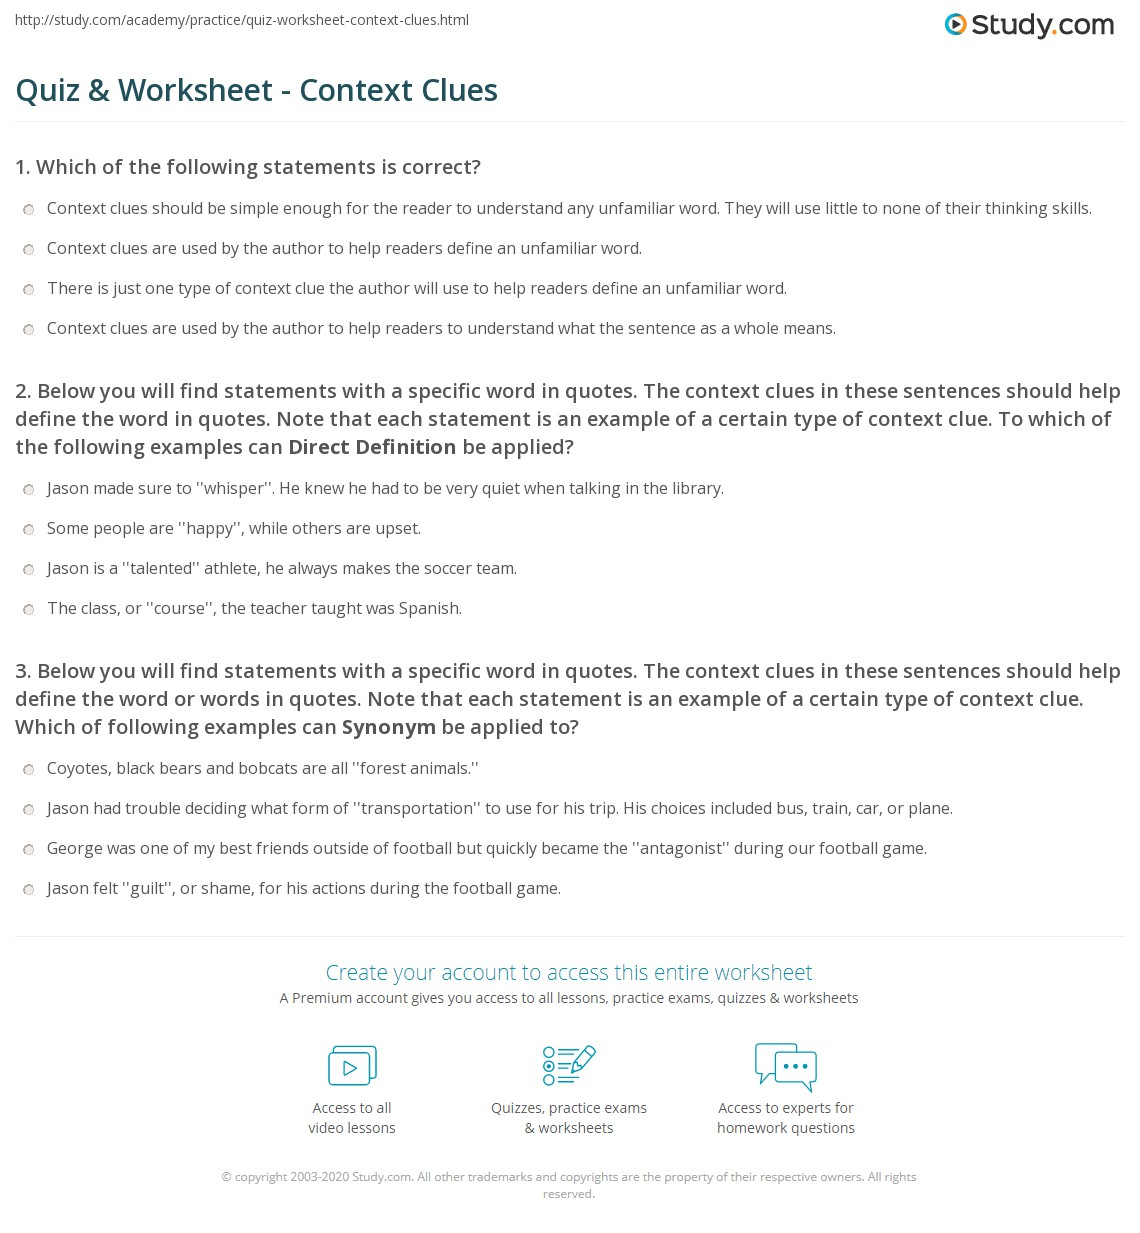 worksheet Context Clues In Paragraphs Worksheets using context clues worksheet free worksheets library download and quiz w ksheet c text study